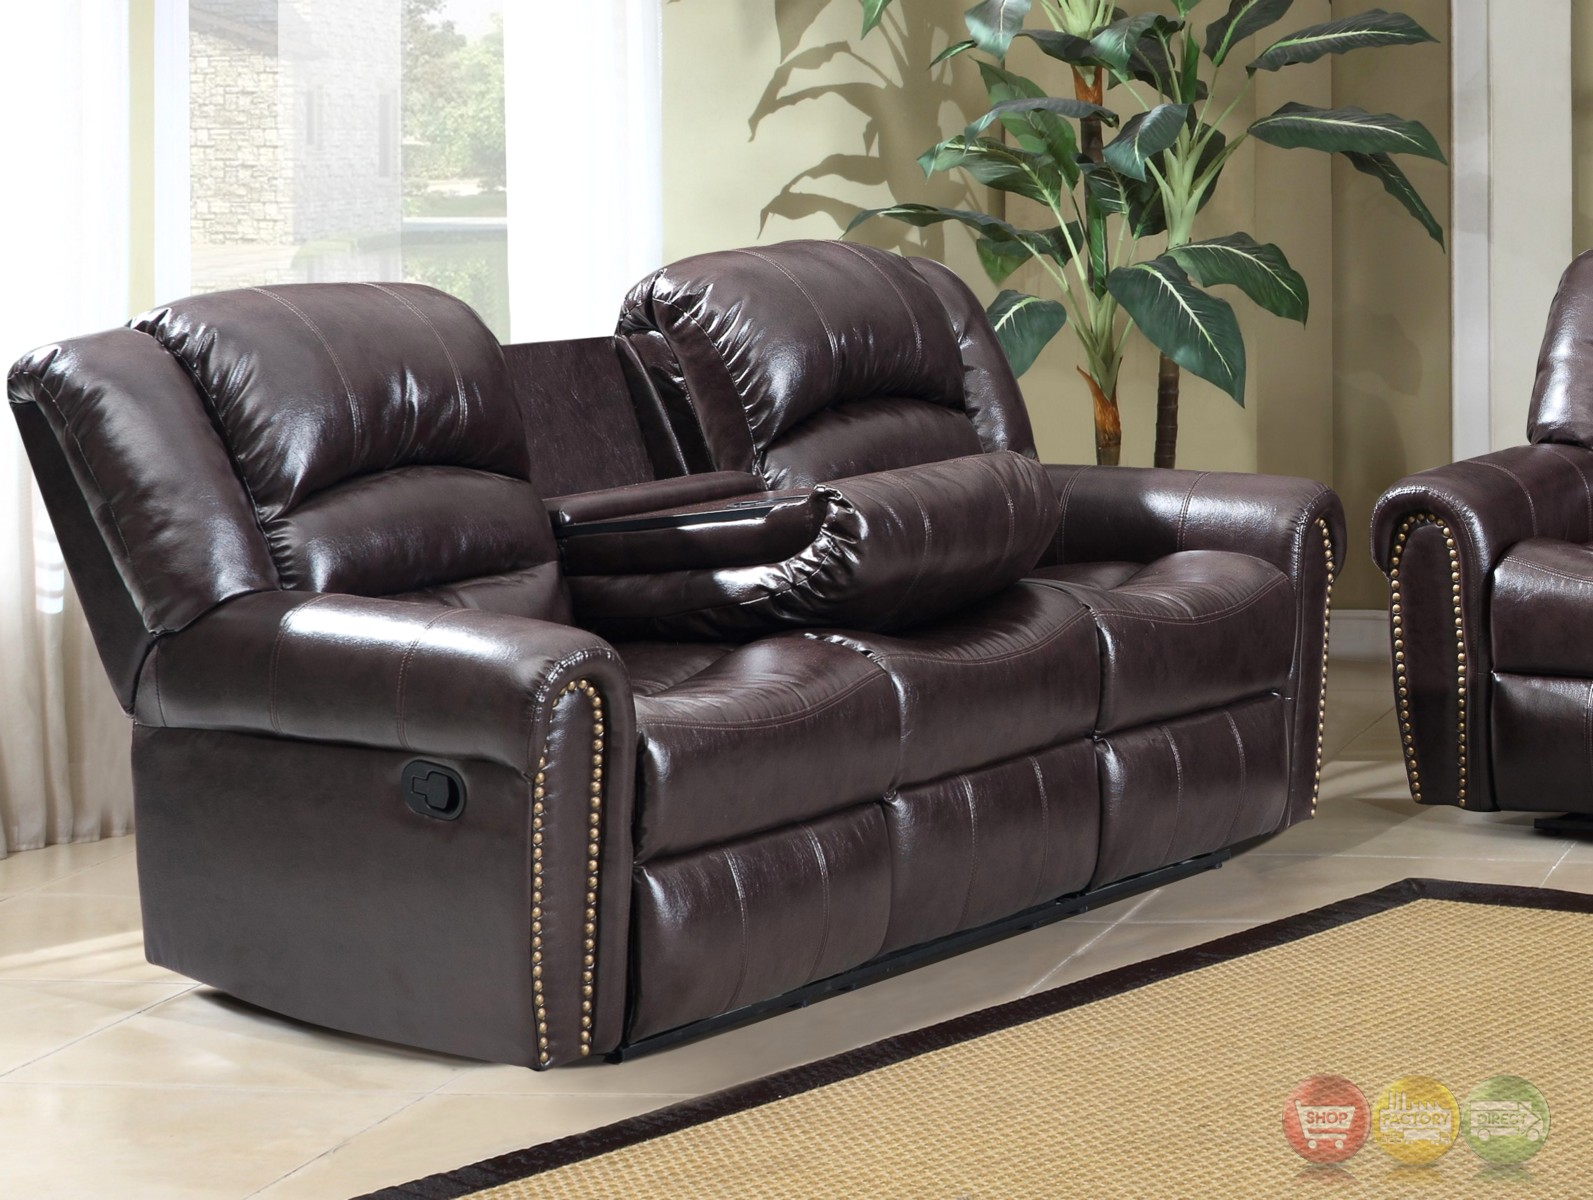 684 Brown Leather Reclining Sofa With Console And Nailhead